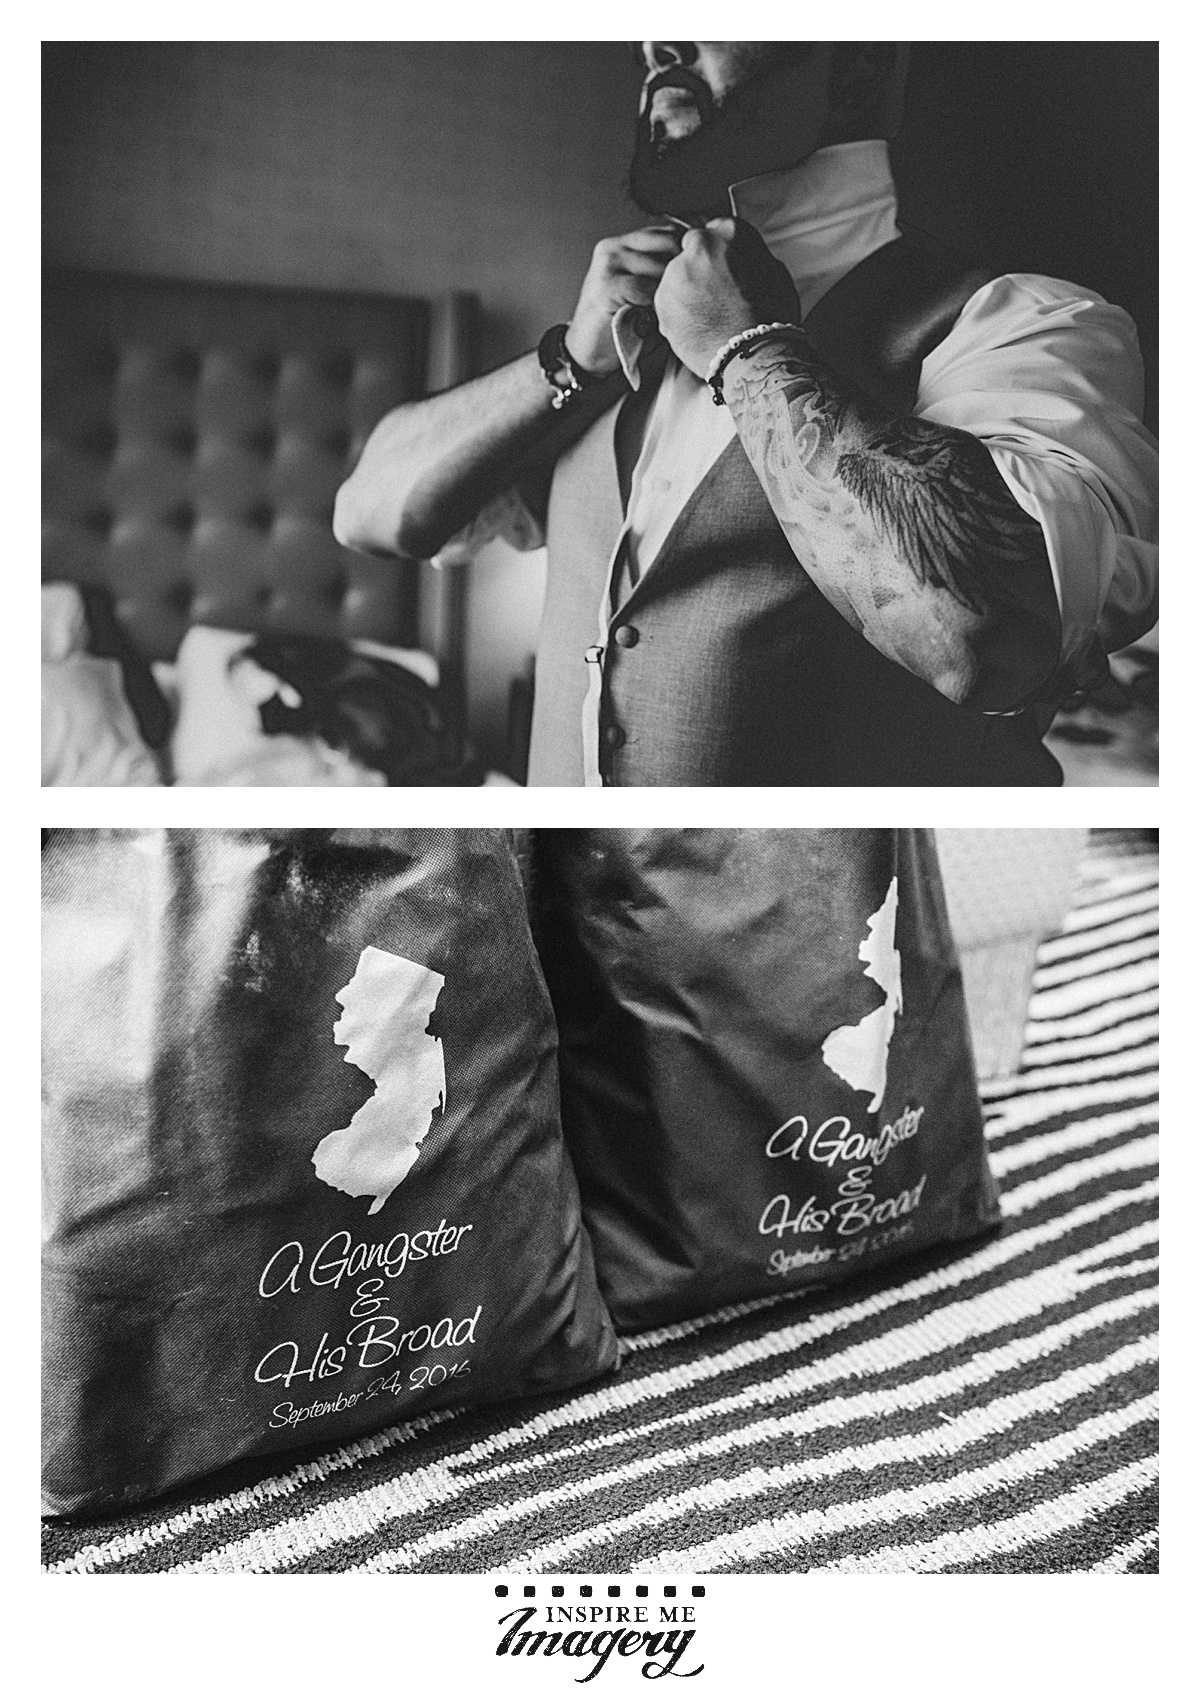 We have a soft spot for bitchin' tattoos. Also, look at these amazing wedding favor bags! A Gangster & His Broad. Looooove it.